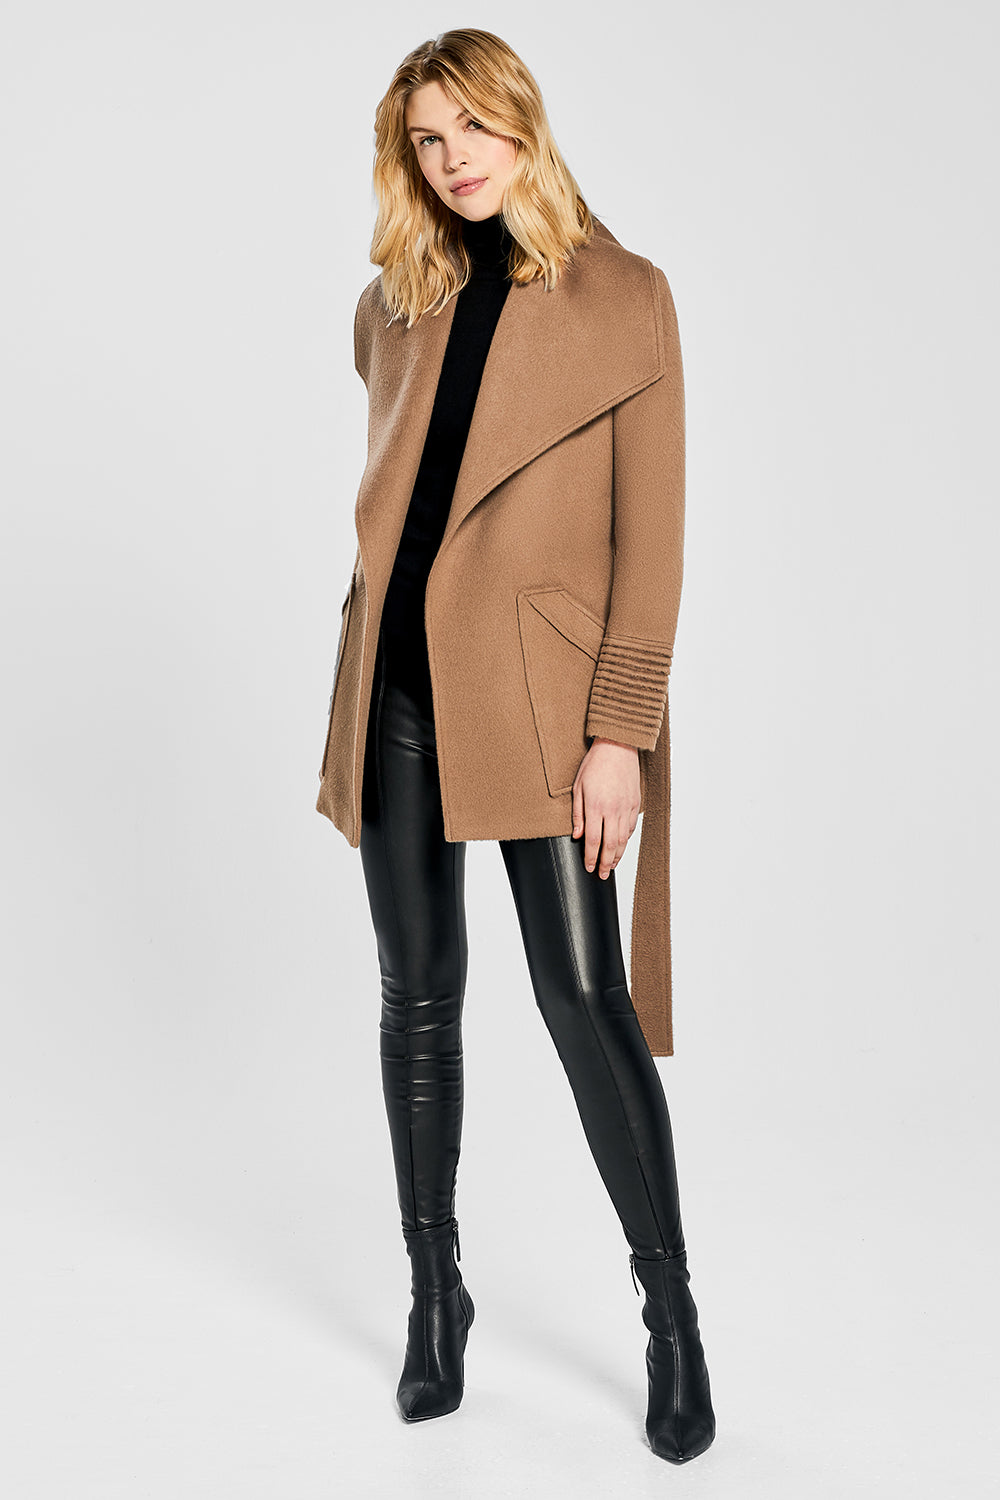 Sentaler Cropped Wide Collar Wrap Coat featured in Baby Alpaca and available in Dark Camel. Seen open.